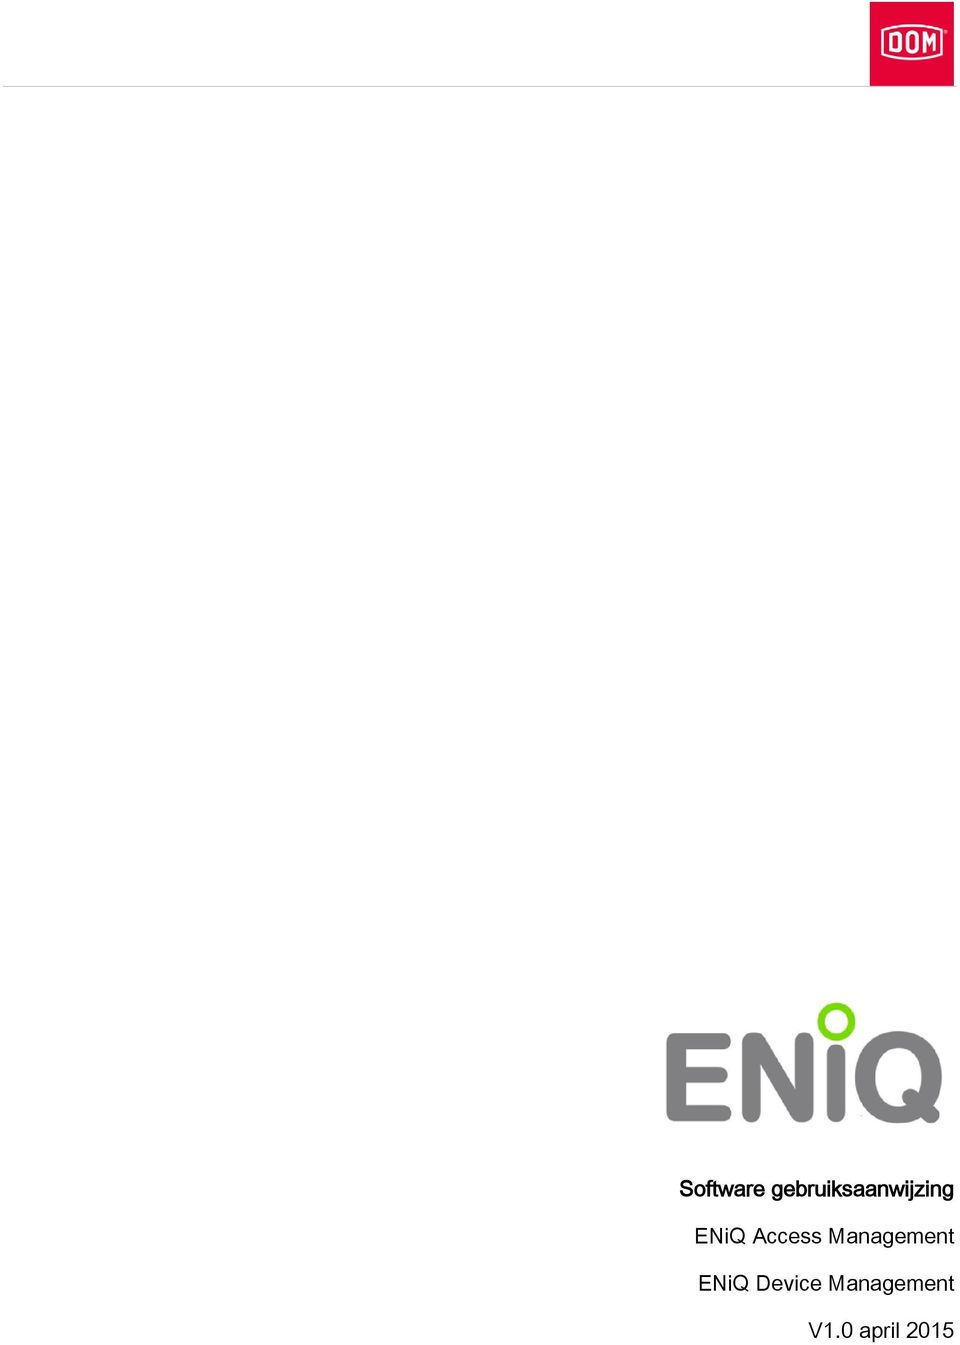 ENiQ Access Management